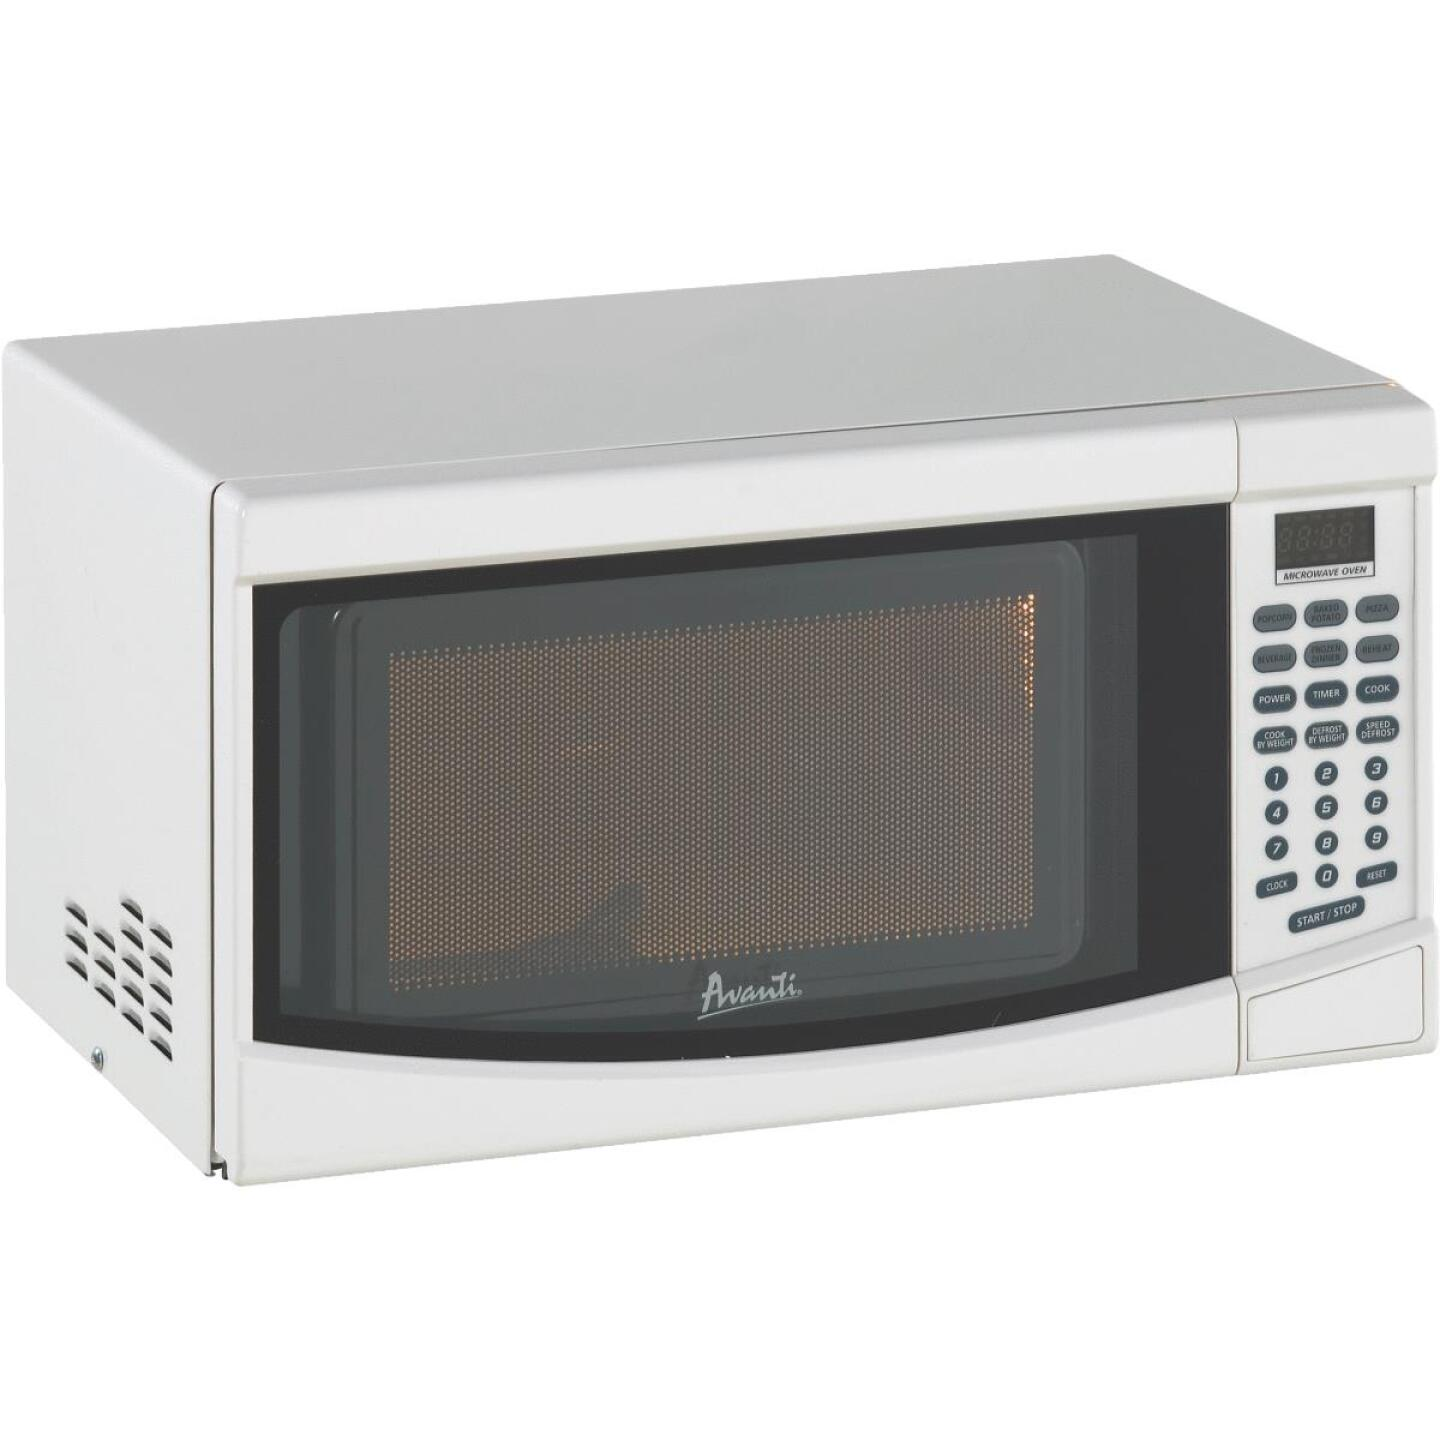 Avanti 0.7 Cu. Ft. White Countertop Microwave Image 1